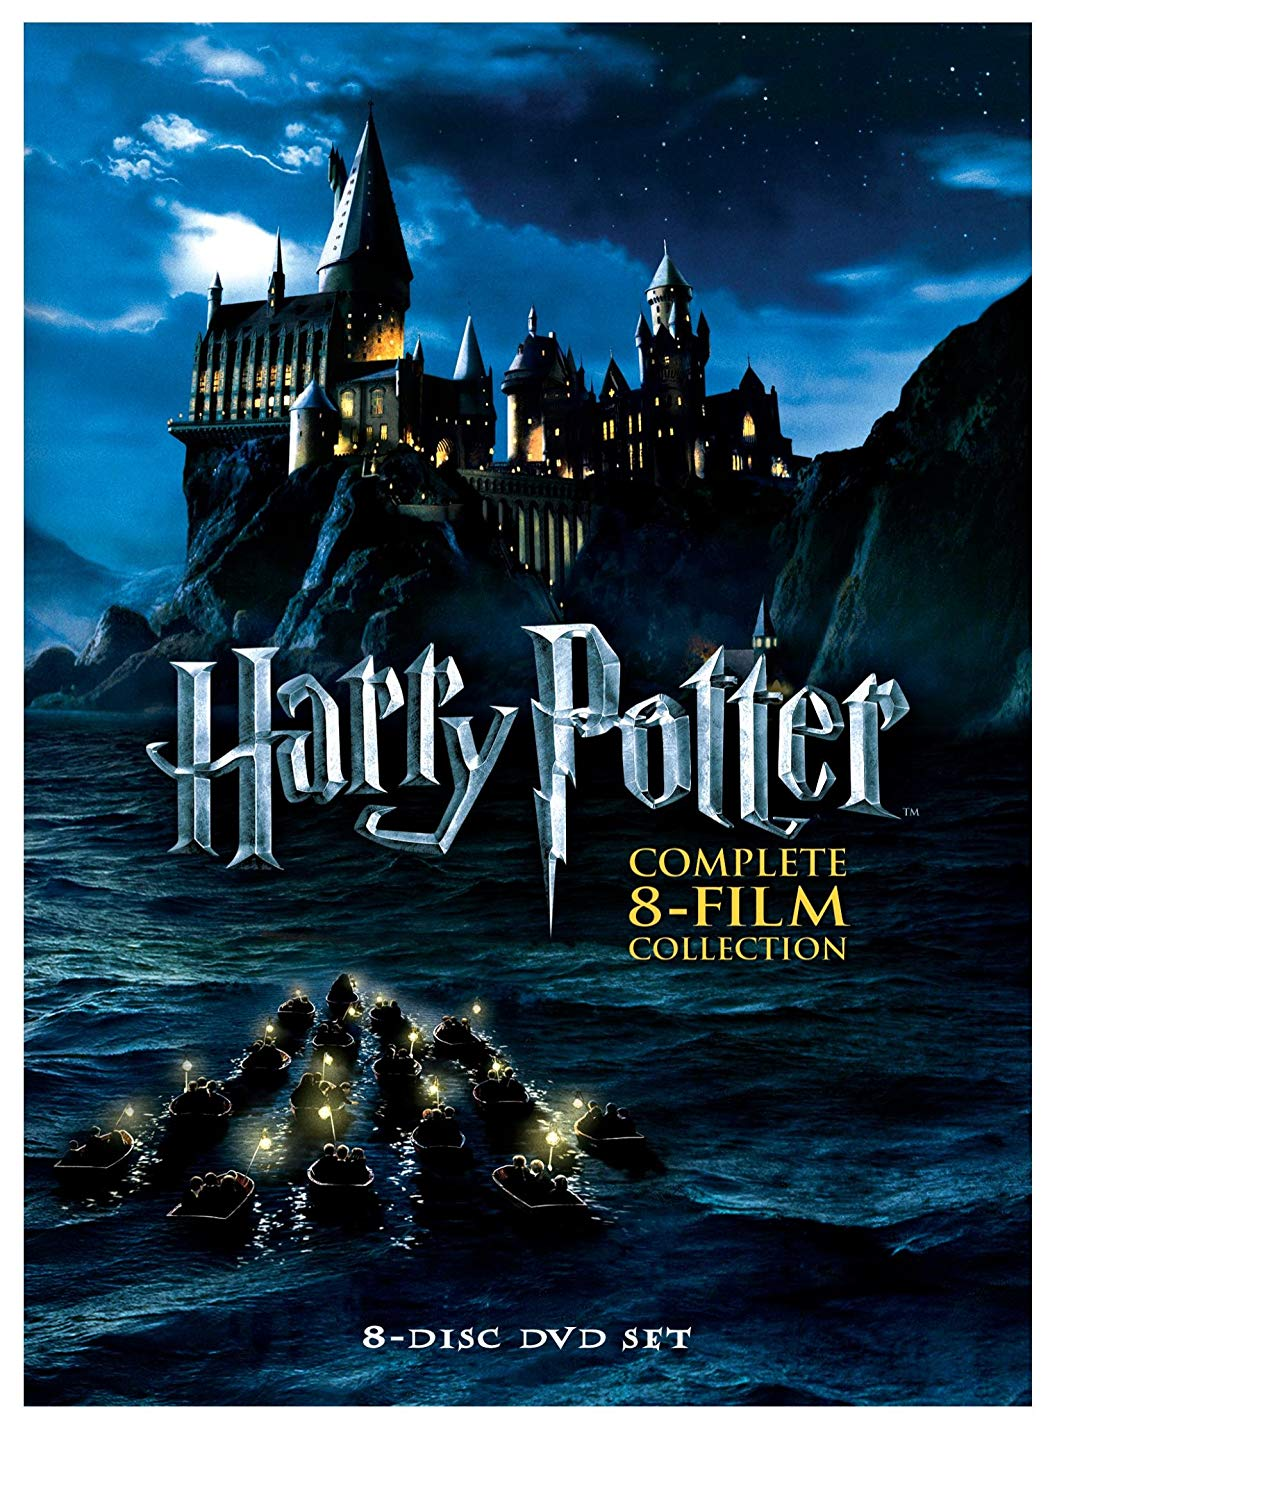 Movie cover: Harry Potter and the Philosopher's Stone